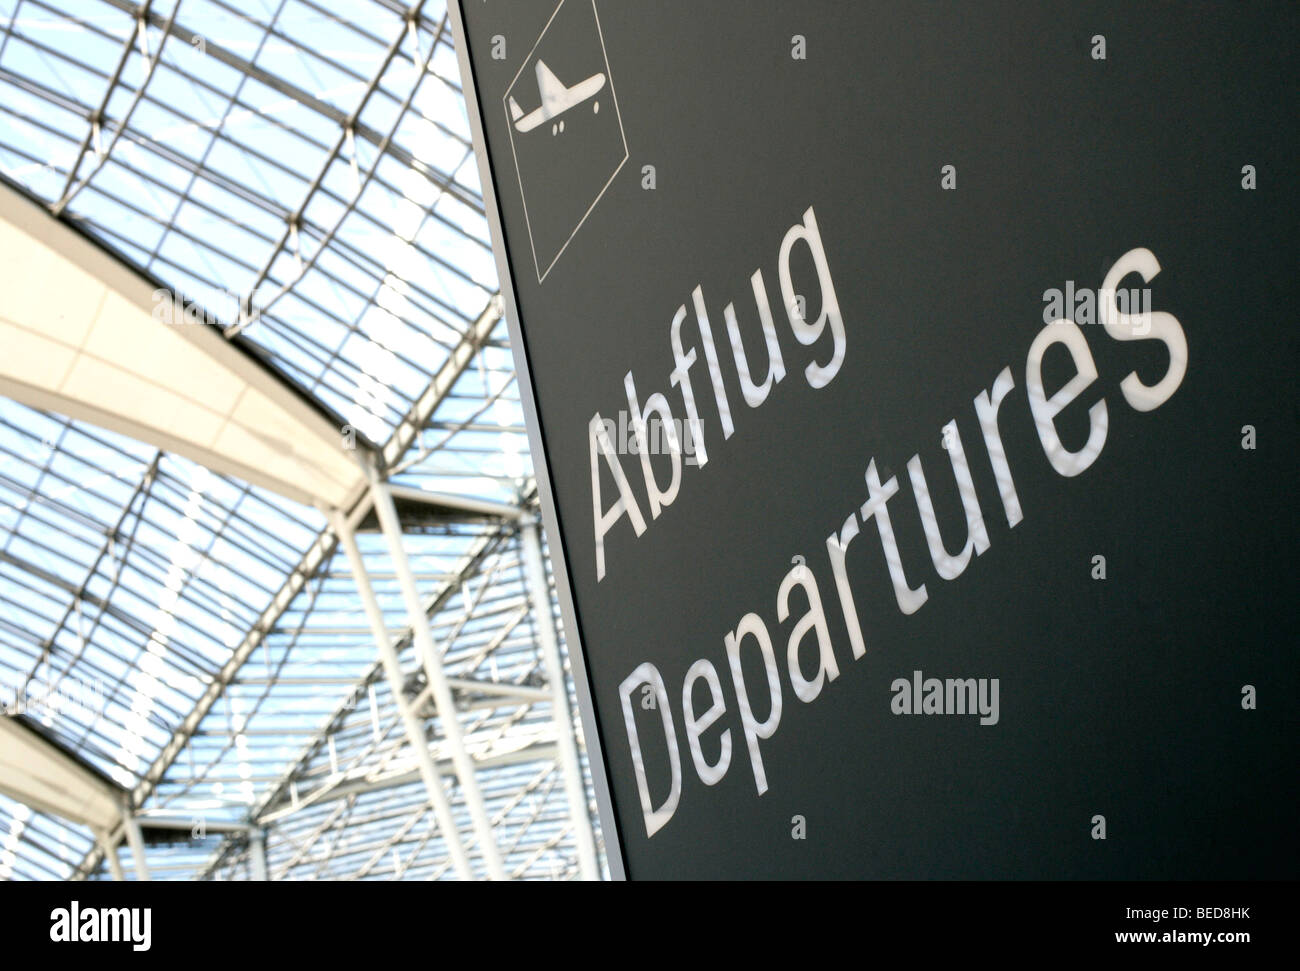 Sign, departures at Terminal 2 in Munich Airport, Franz-Josef-Strauss Airport, Munich, Bavaria, Germany, Europe - Stock Image